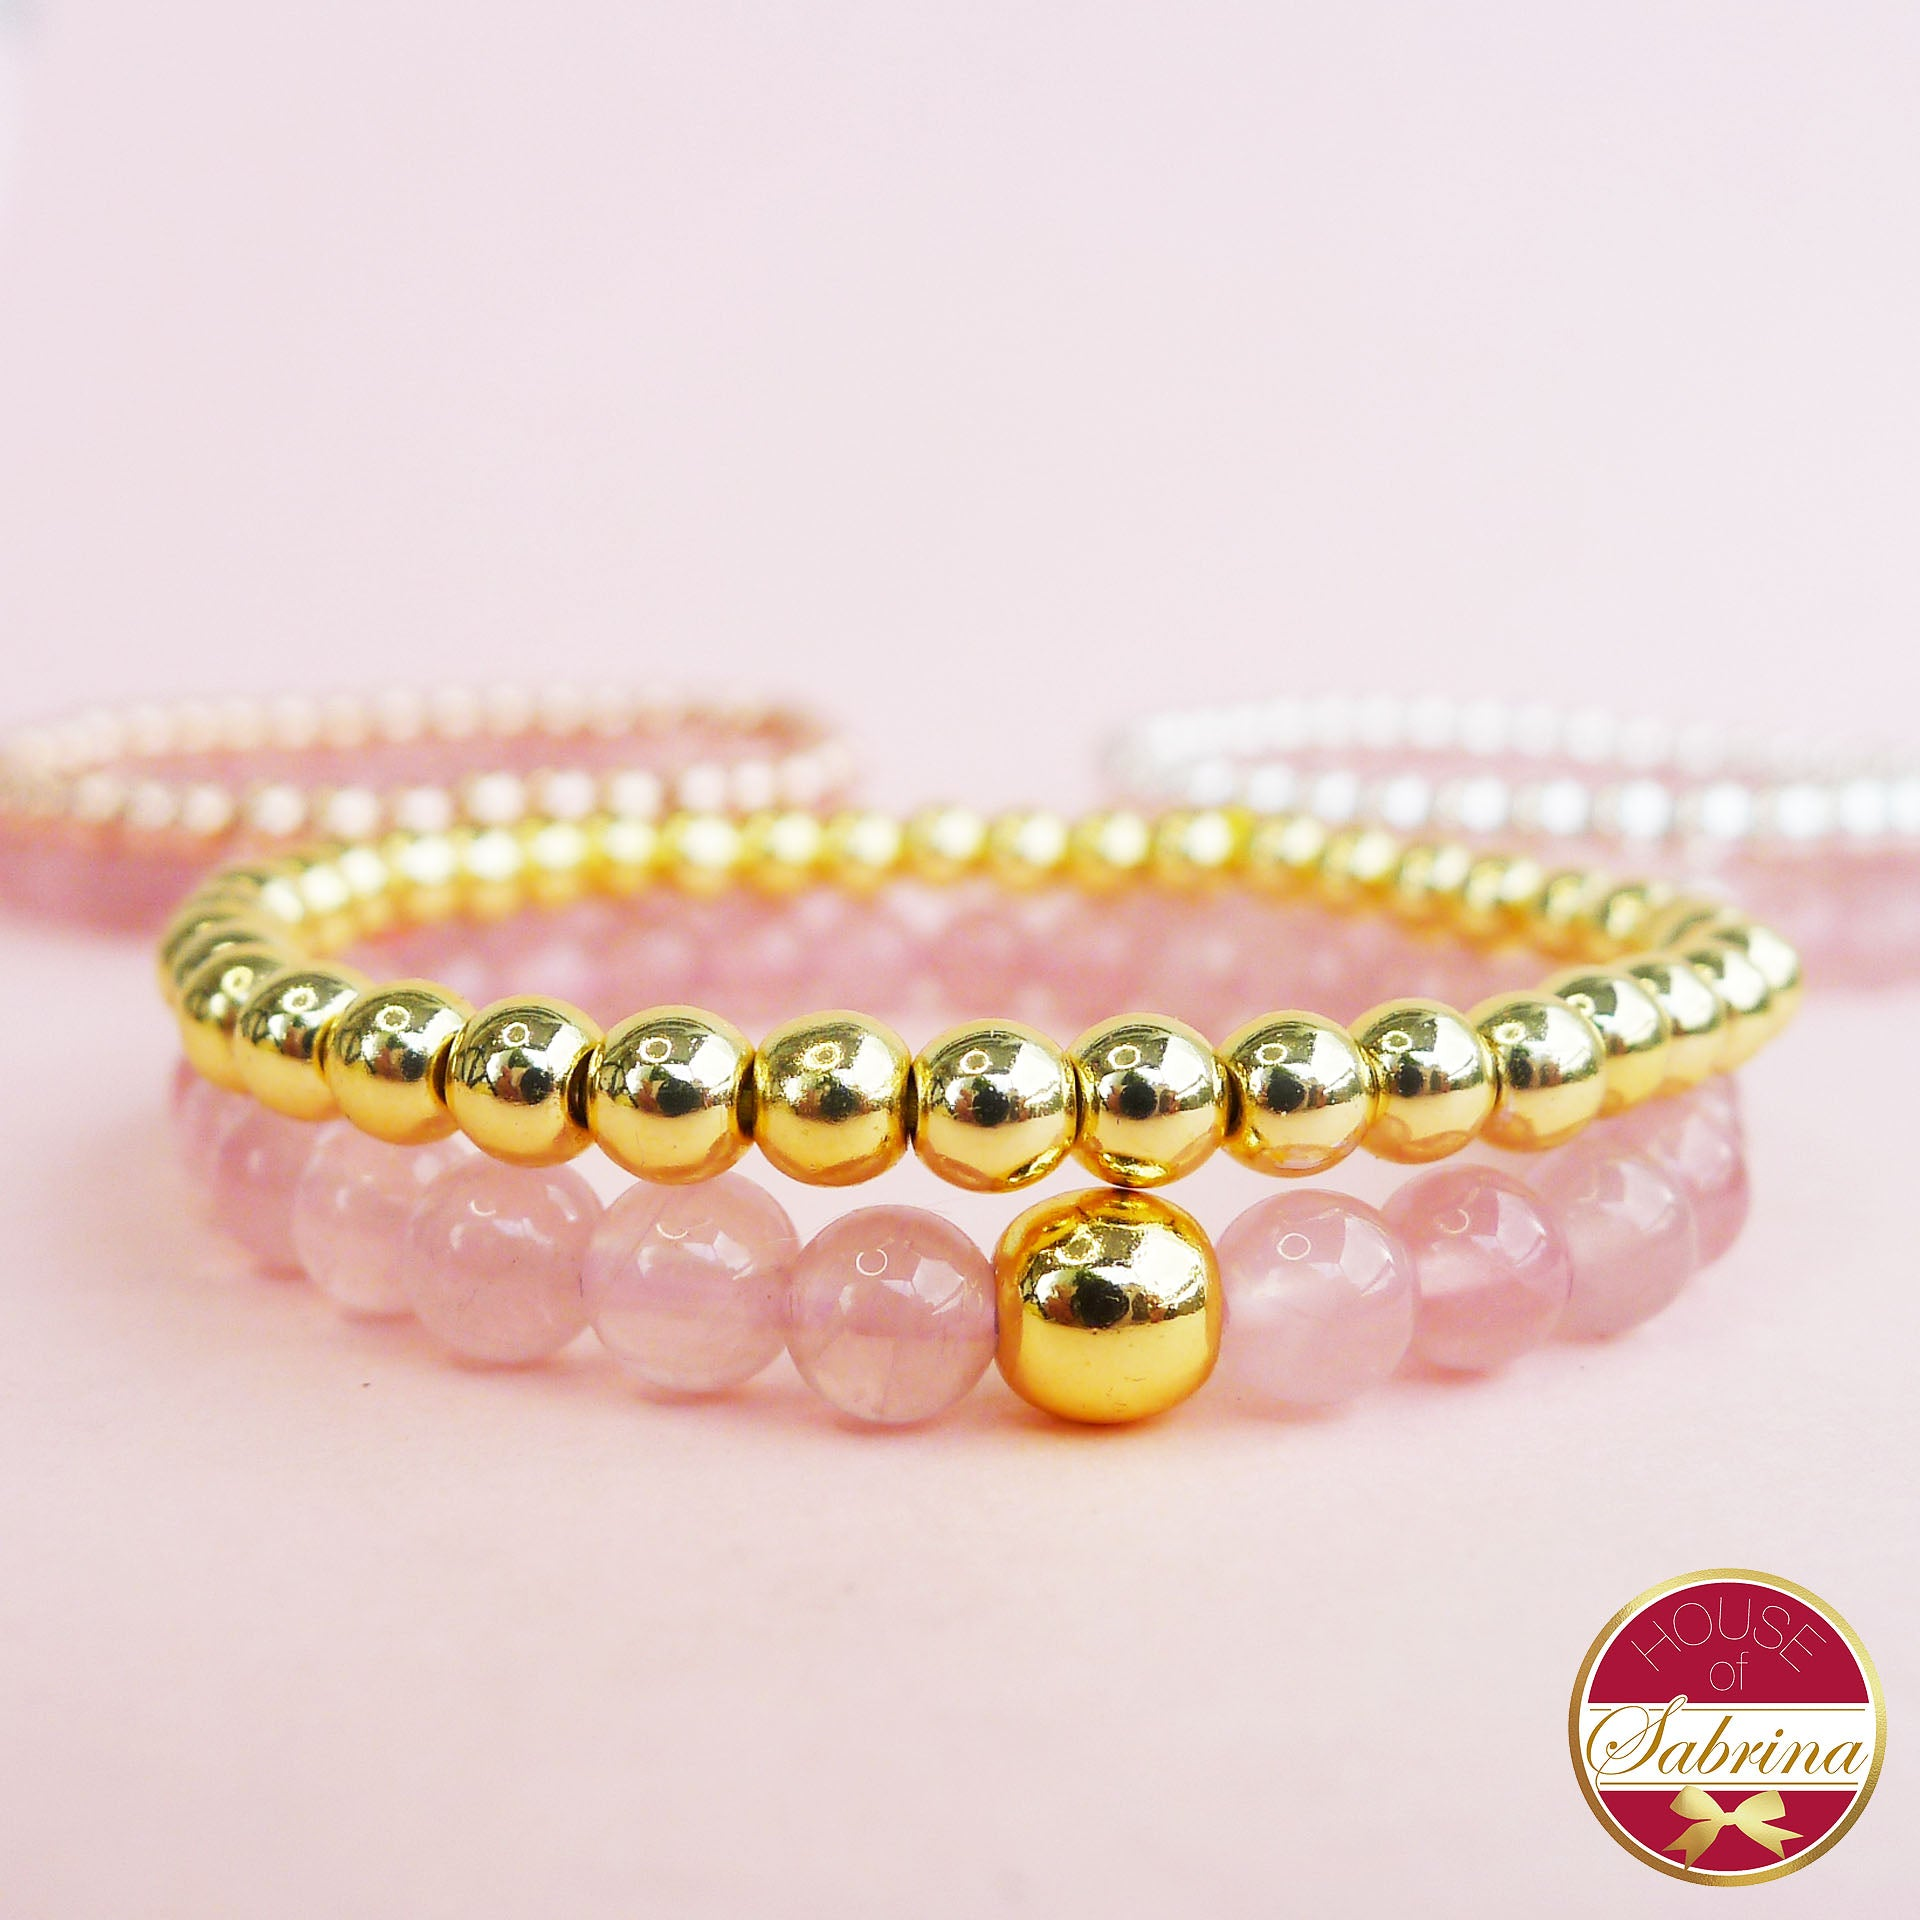 HIGH GRADE MADAGASCAN ROSE QUARTZ + GOLD HEMATITE DOUBLE STACK